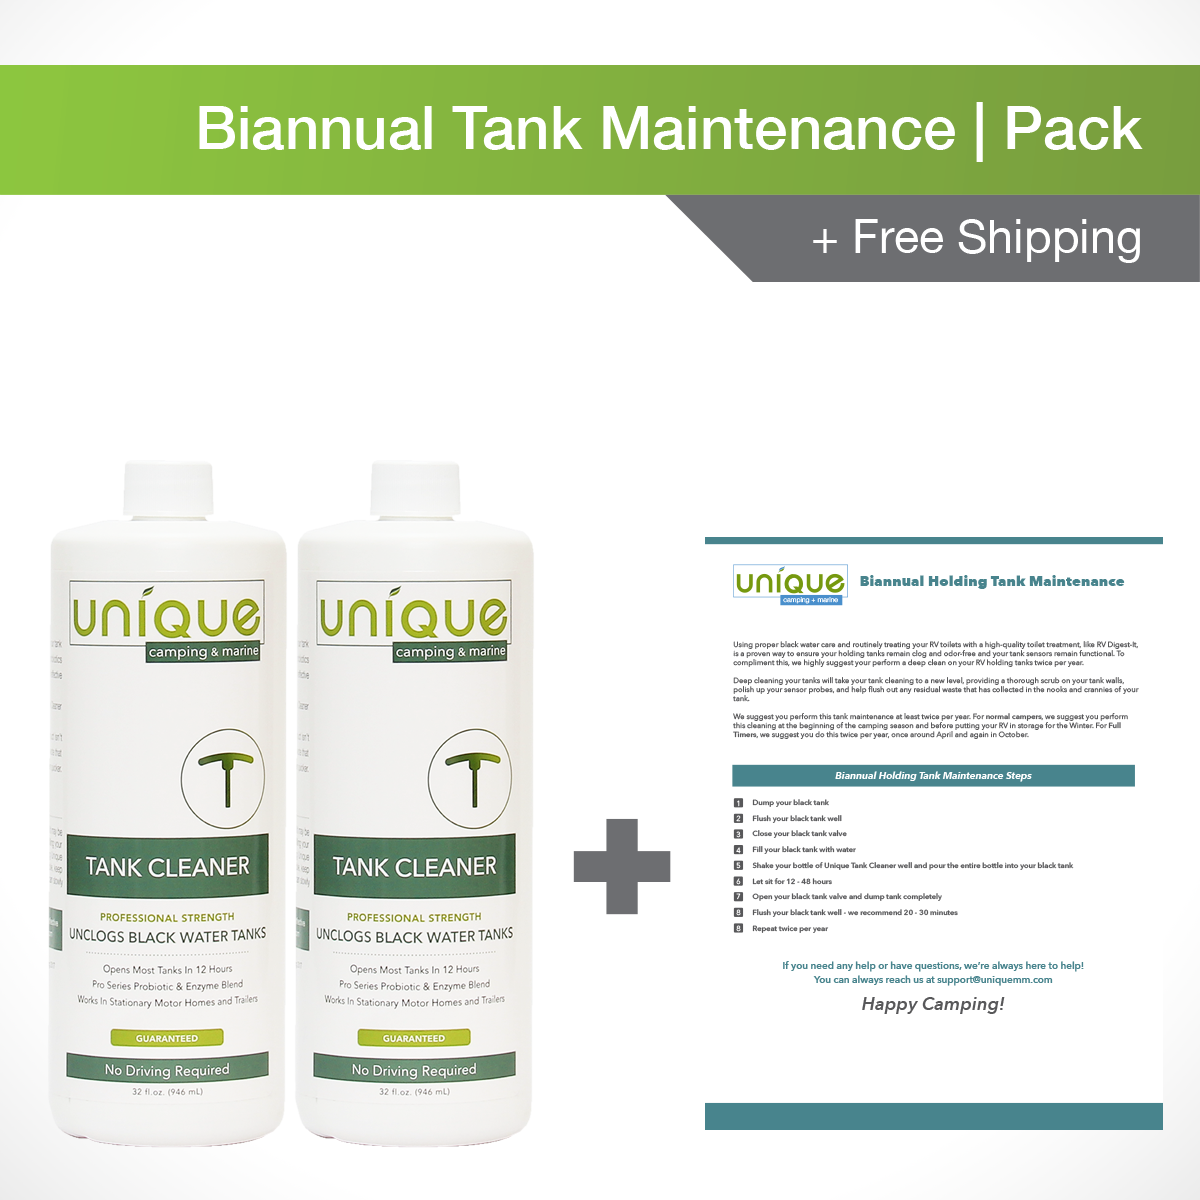 Our Biannual Tank Maintenance Pack is exactly what you need to keep your RV waste water systems at top performance. Purchase this RV camping pack and get two bottles of Unique Tank Cleaner and a free guide to maintaining your holding tanks.